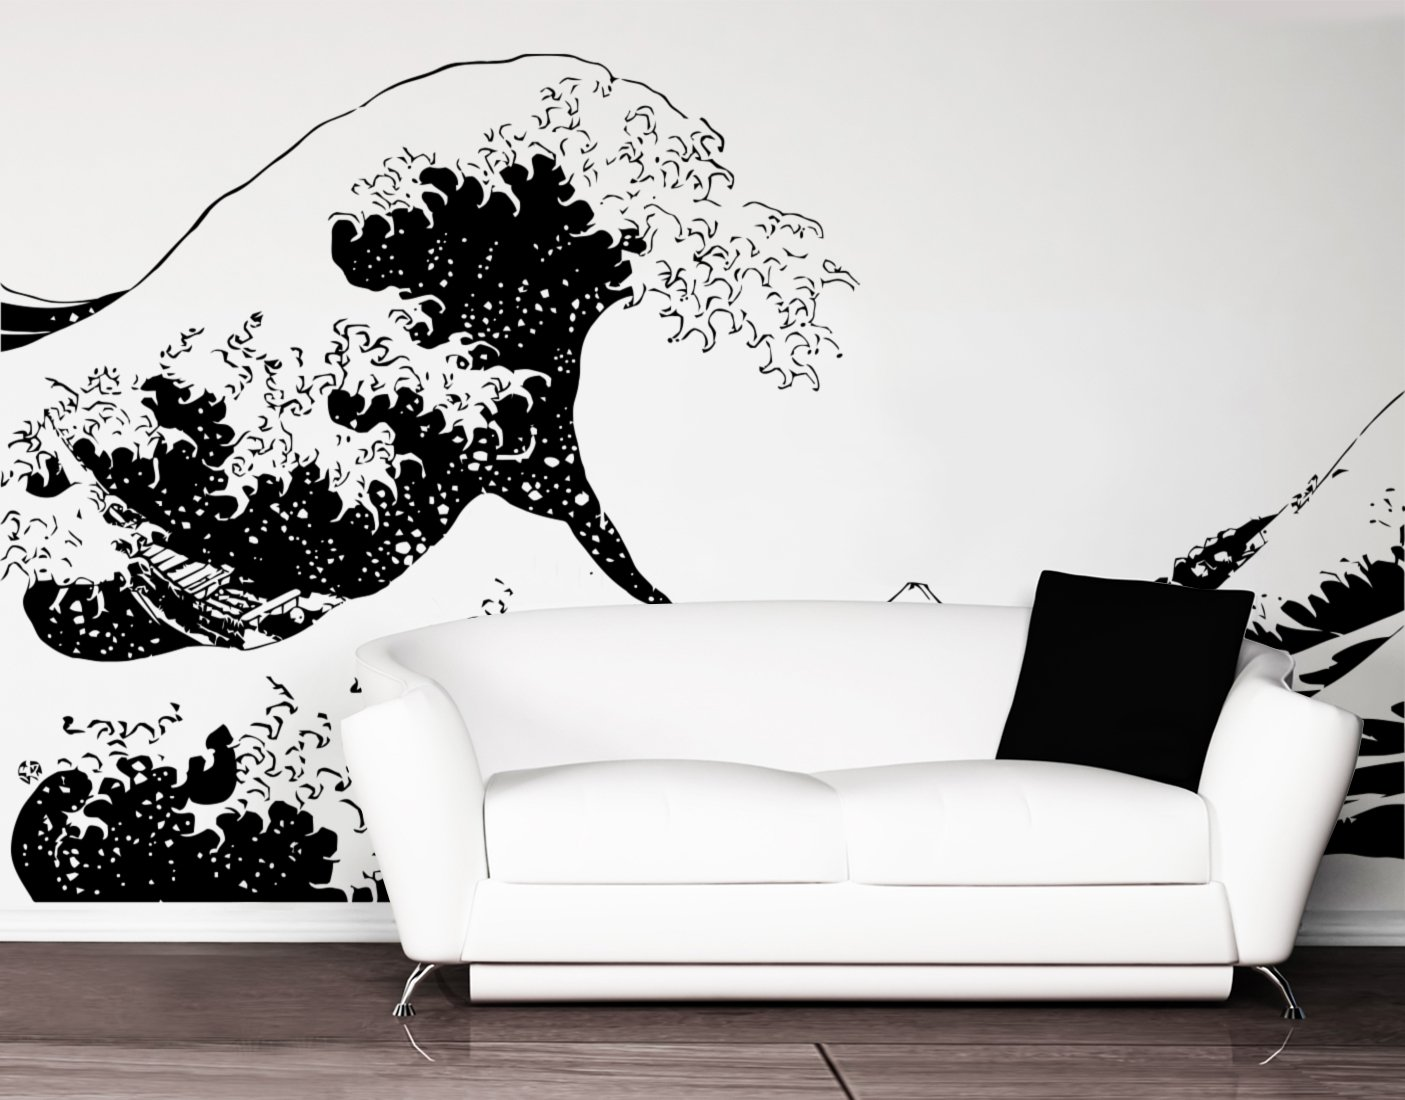 Amazoncom Stickerbrand Asian Décor Vinyl Wall Art Japanese - Japanese wall decals